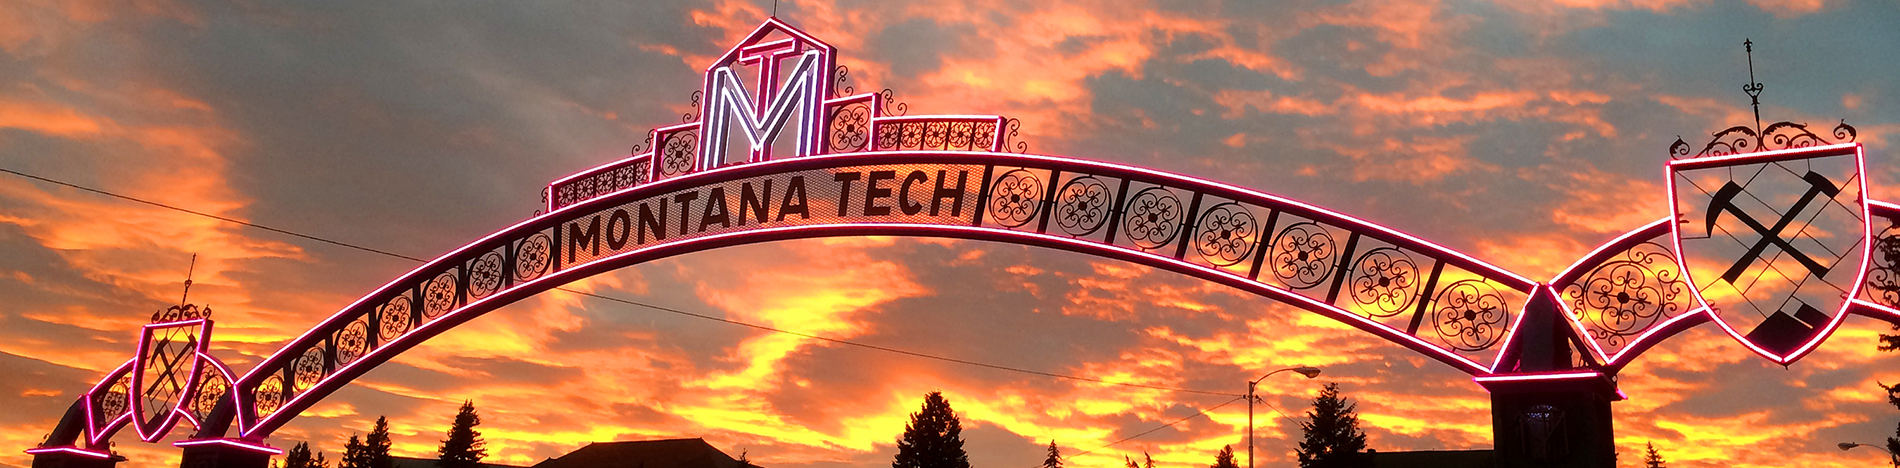 Human Resources - Montana Tech